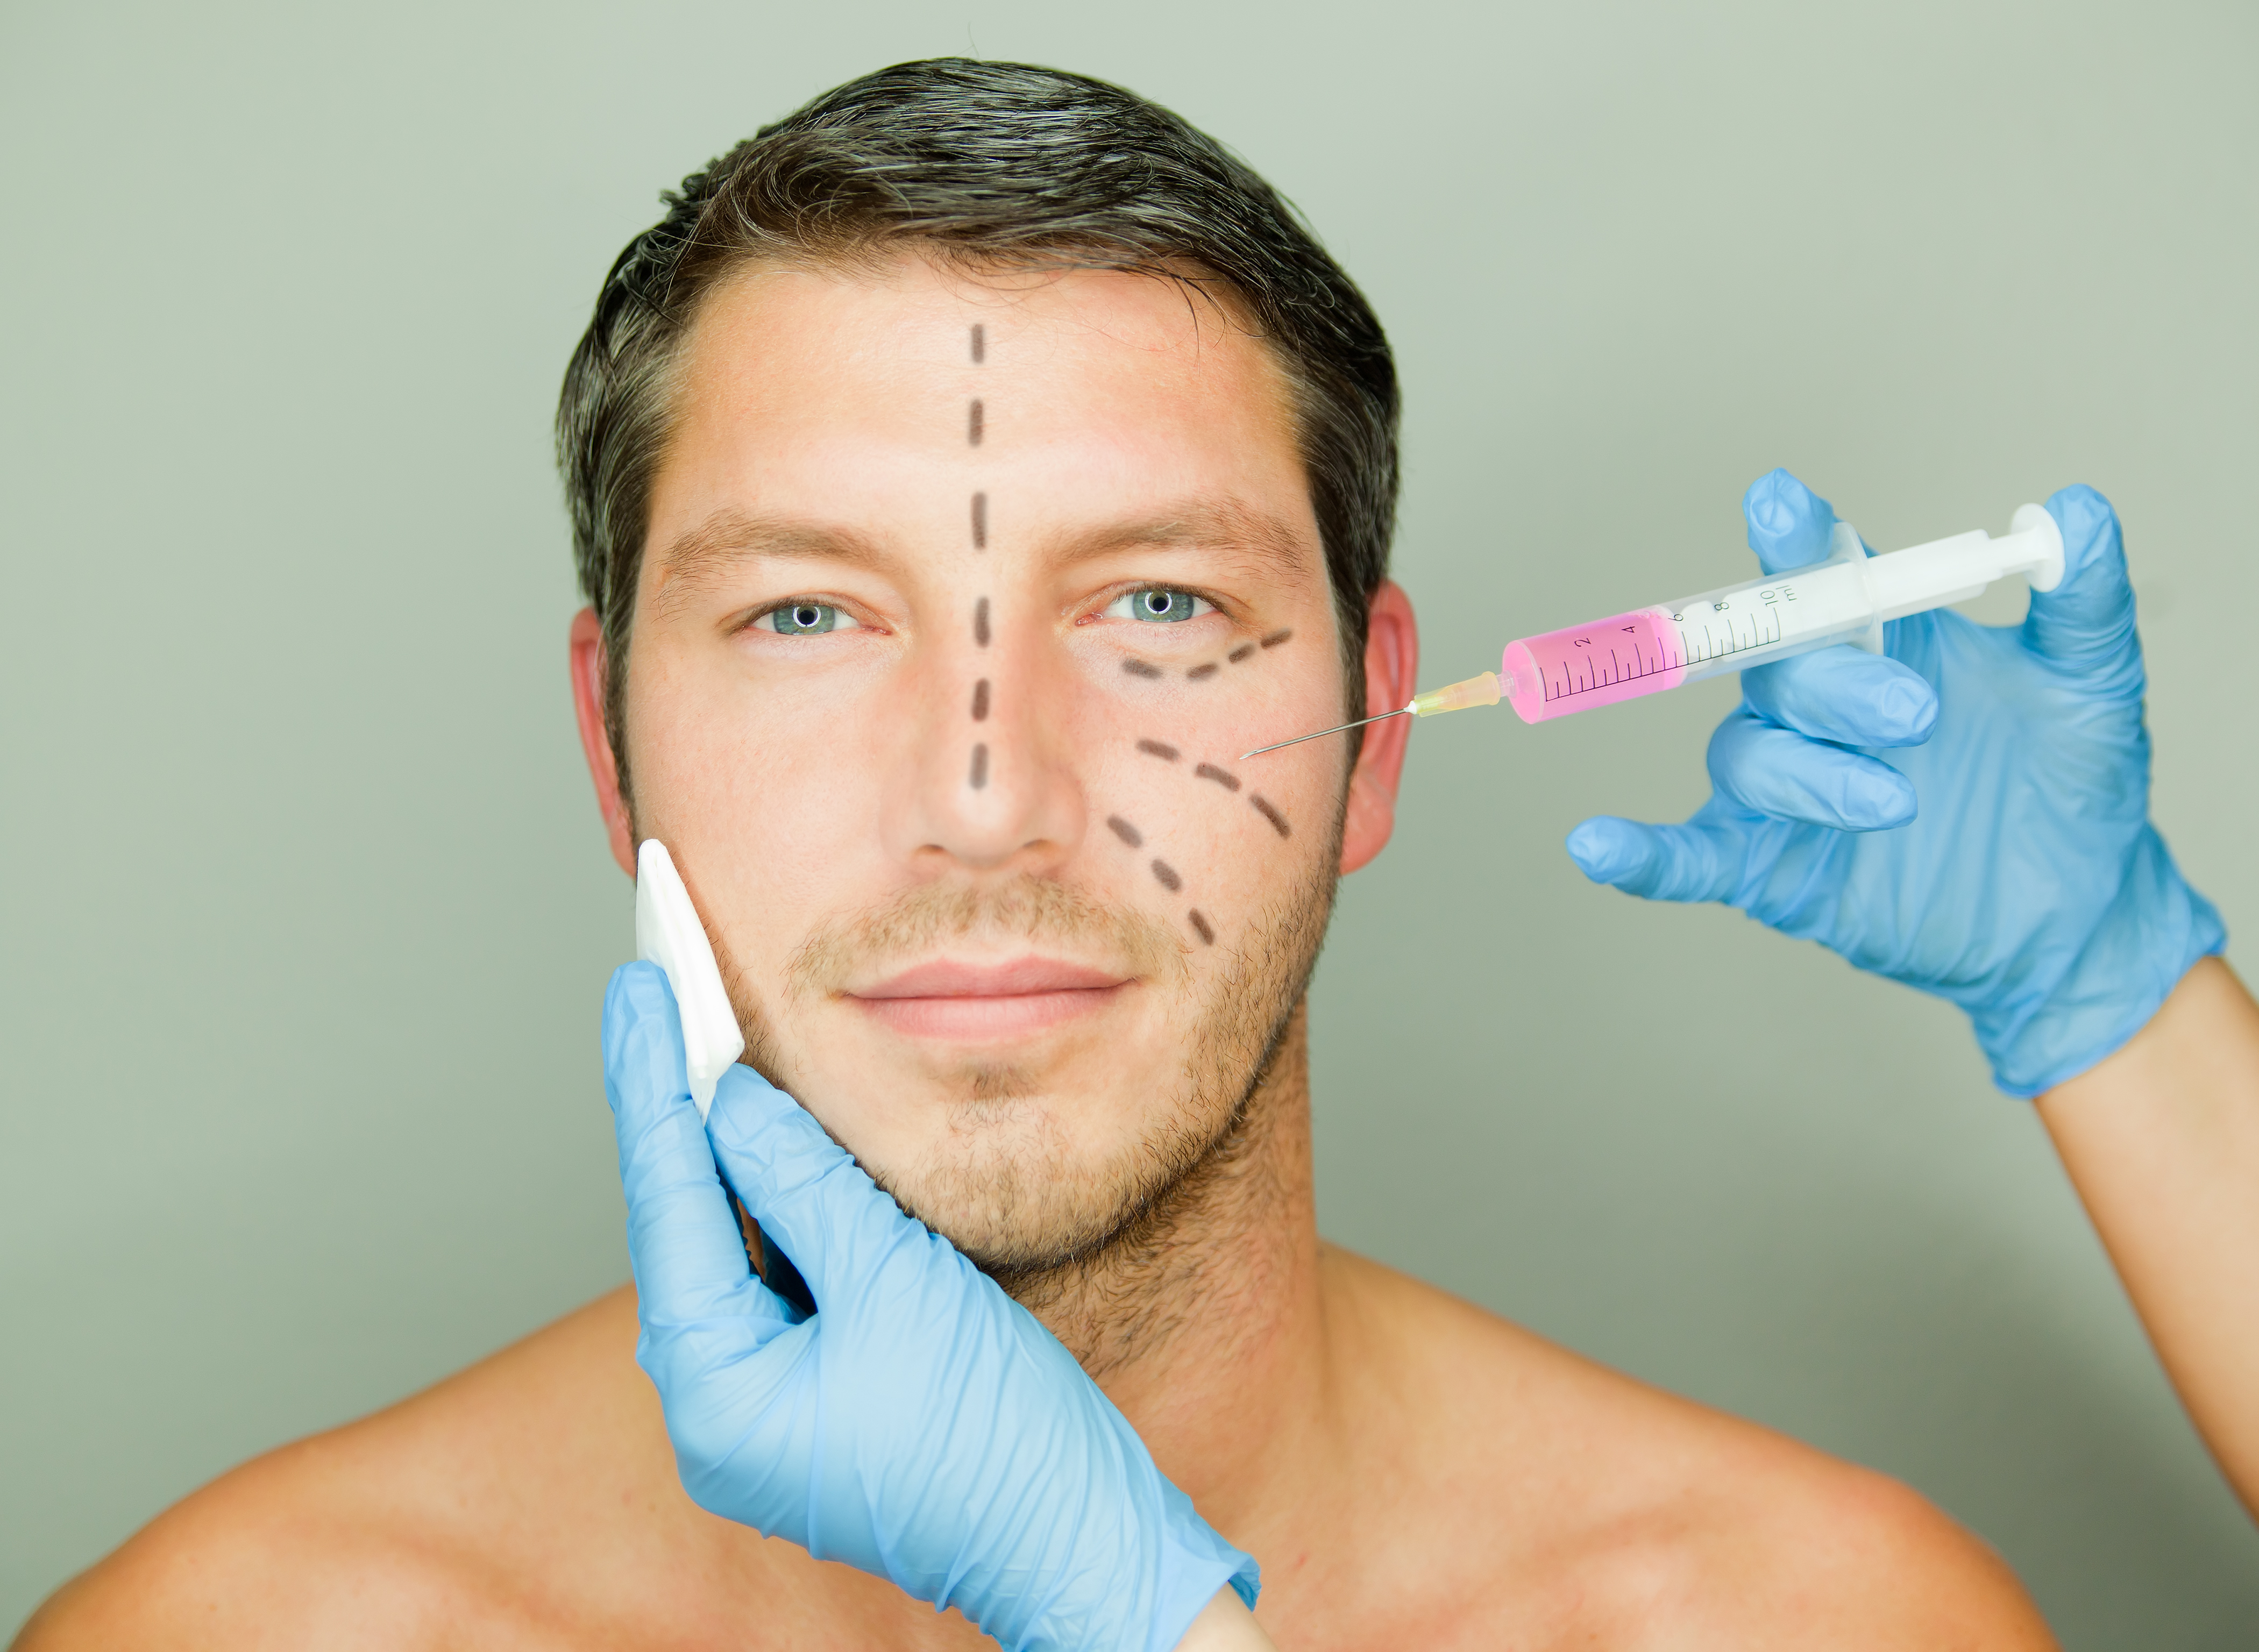 What Is The Perfect Age To Start Taking Botox Injections?